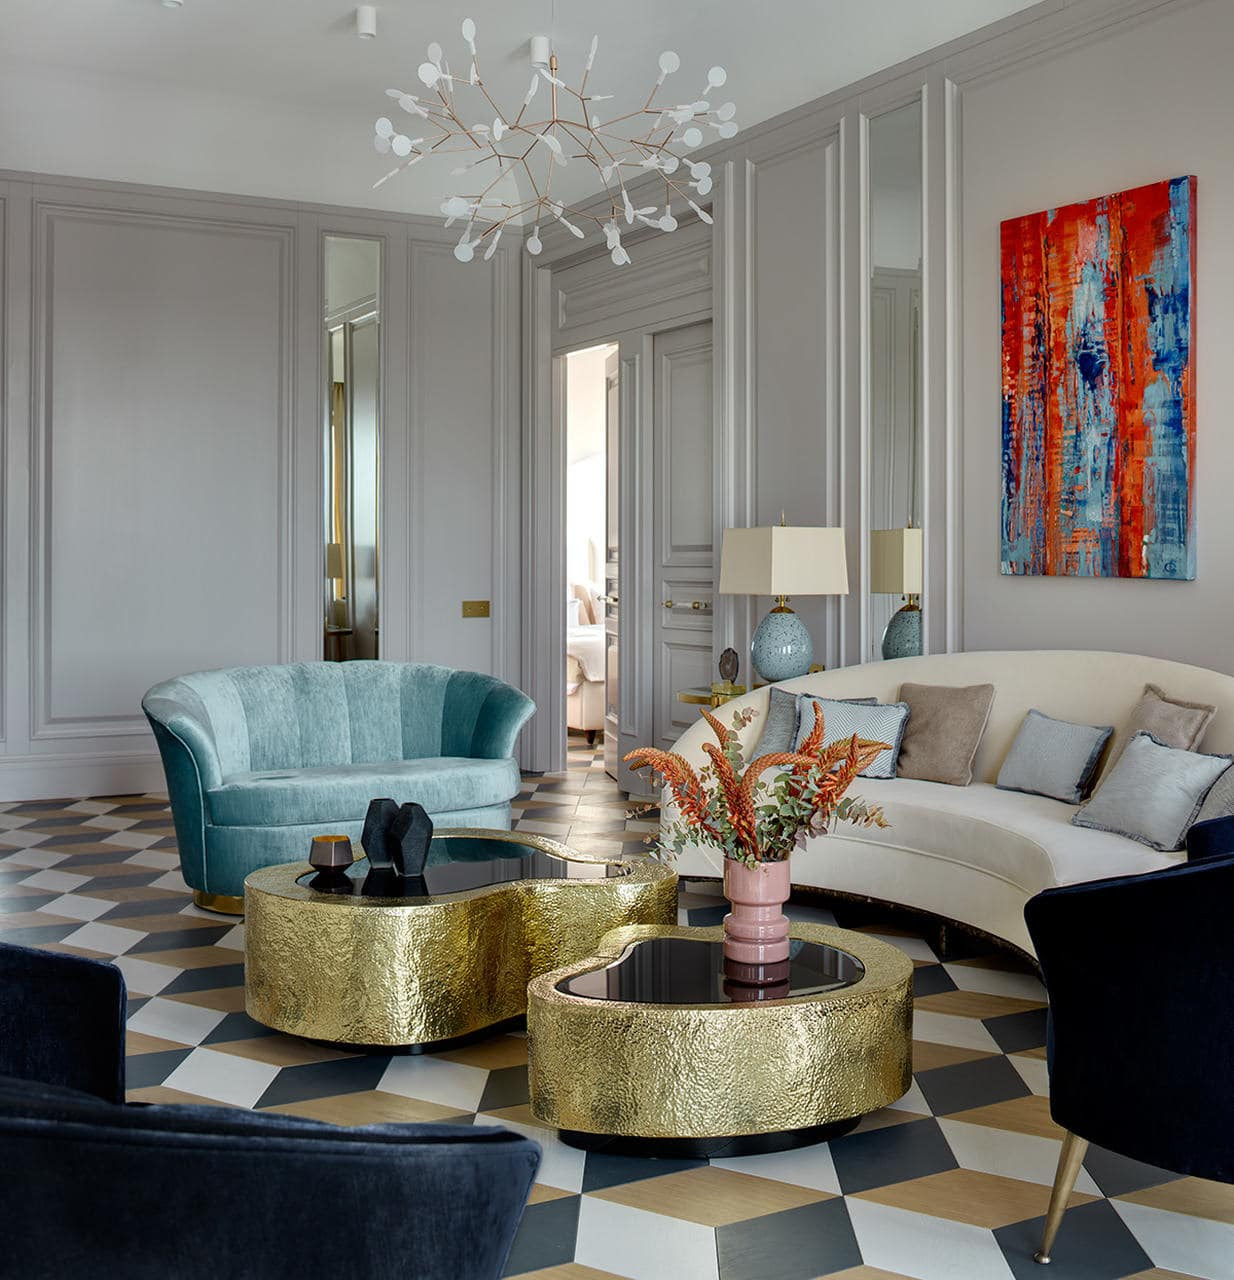 3 Gold Living Room Ideas For Your Design Project Insplosion